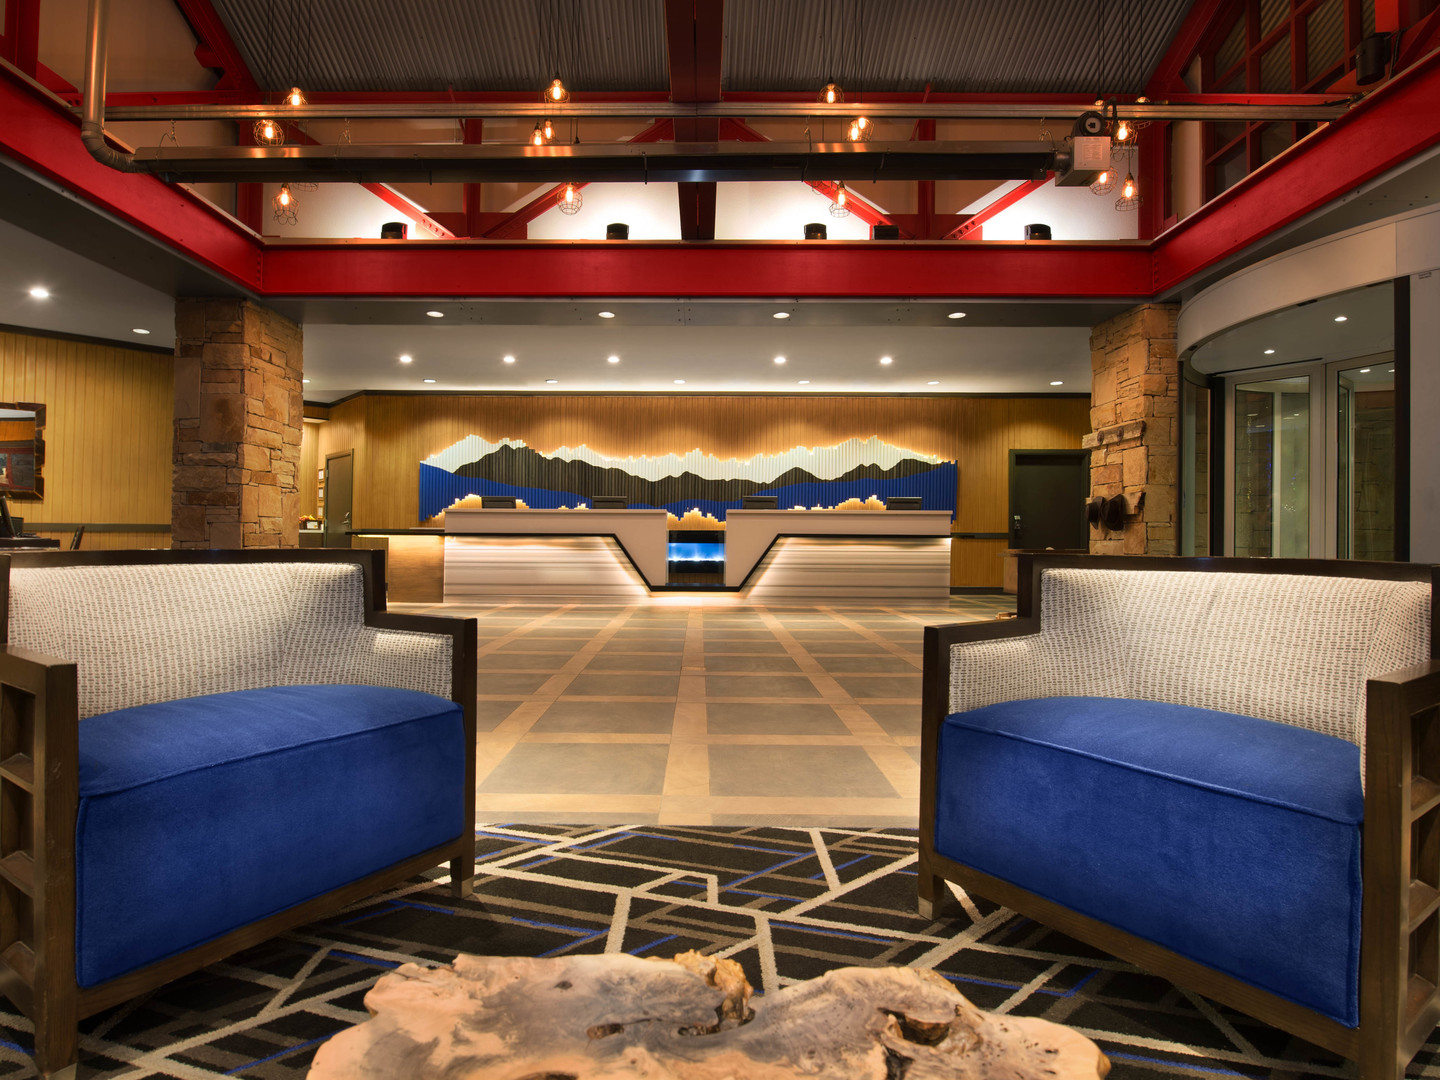 Marriott's MountainSide Lobby. Marriott's MountainSide is located in Park City, Utah United States.